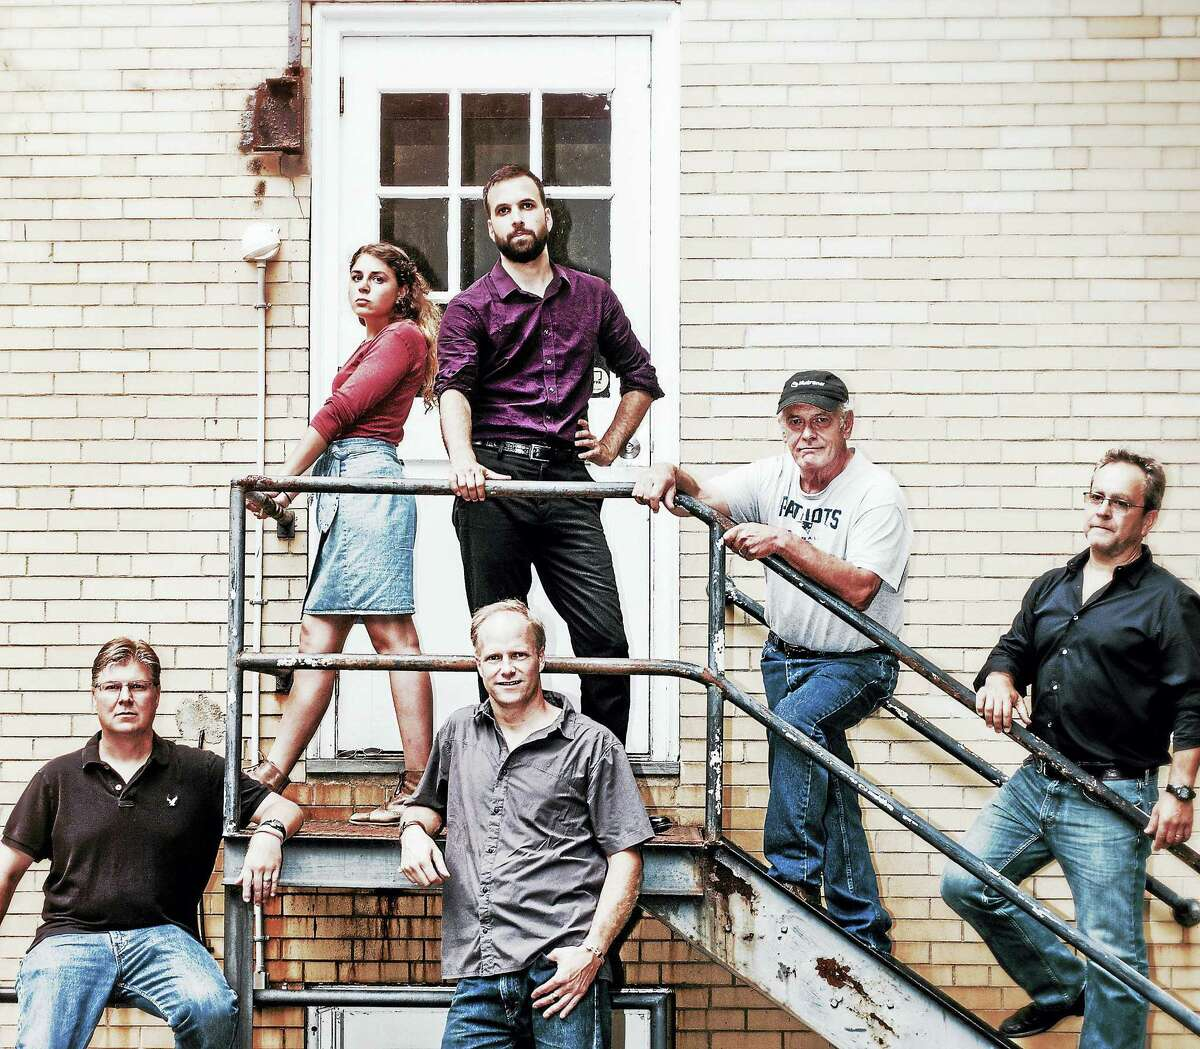 Plywood Cowboy will sing of heartbreak and hound dogs on Saturday at The Kate.